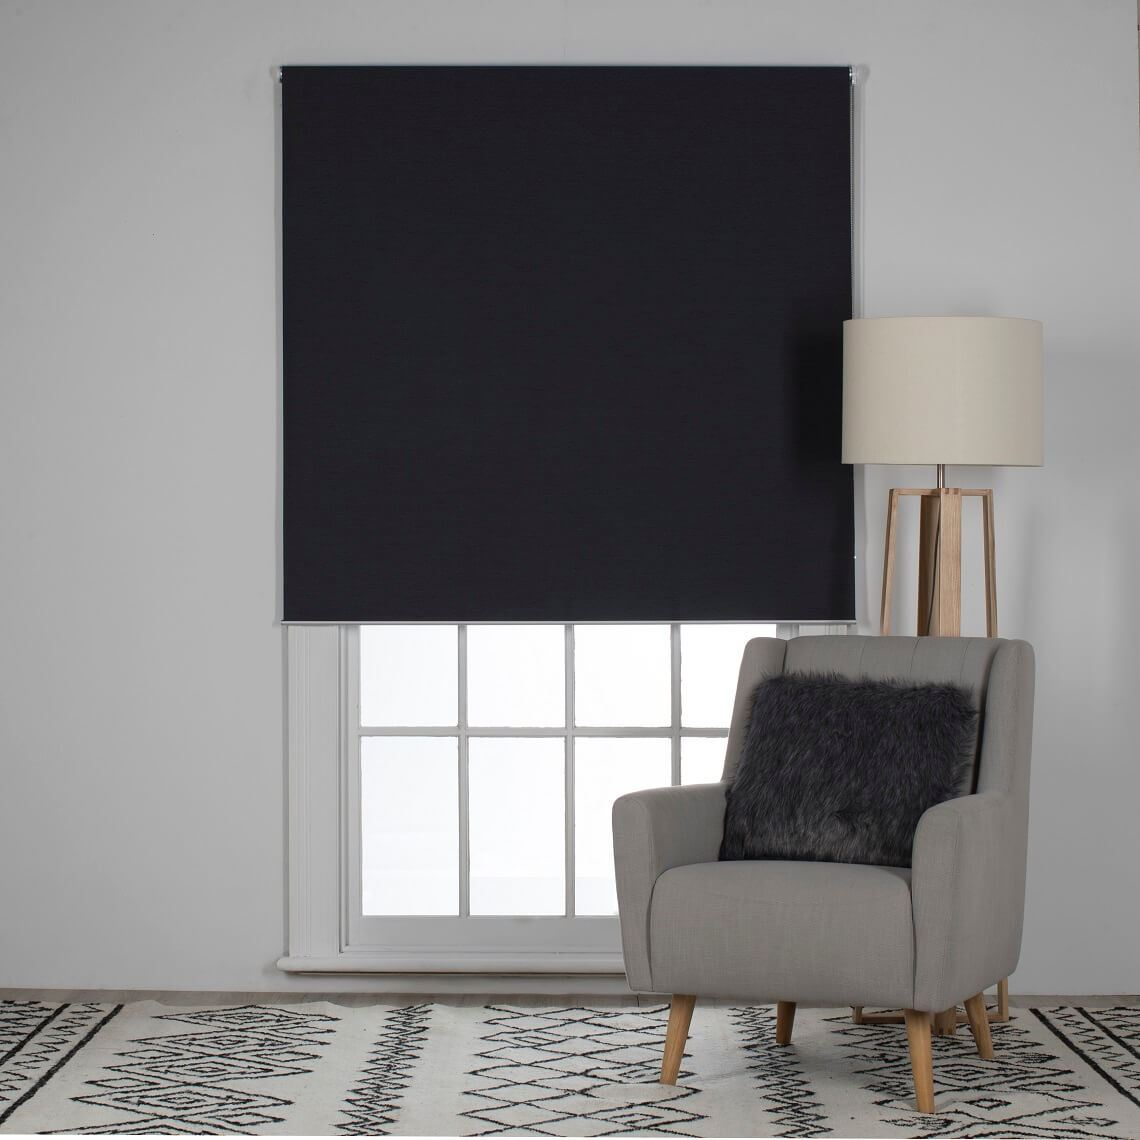 Trenton Blockout Roller Blind Size W 90cm x D 0cm x H 210cm in Gunmetal 100% Polyester Freedom by Freedom, a Curtains for sale on Style Sourcebook